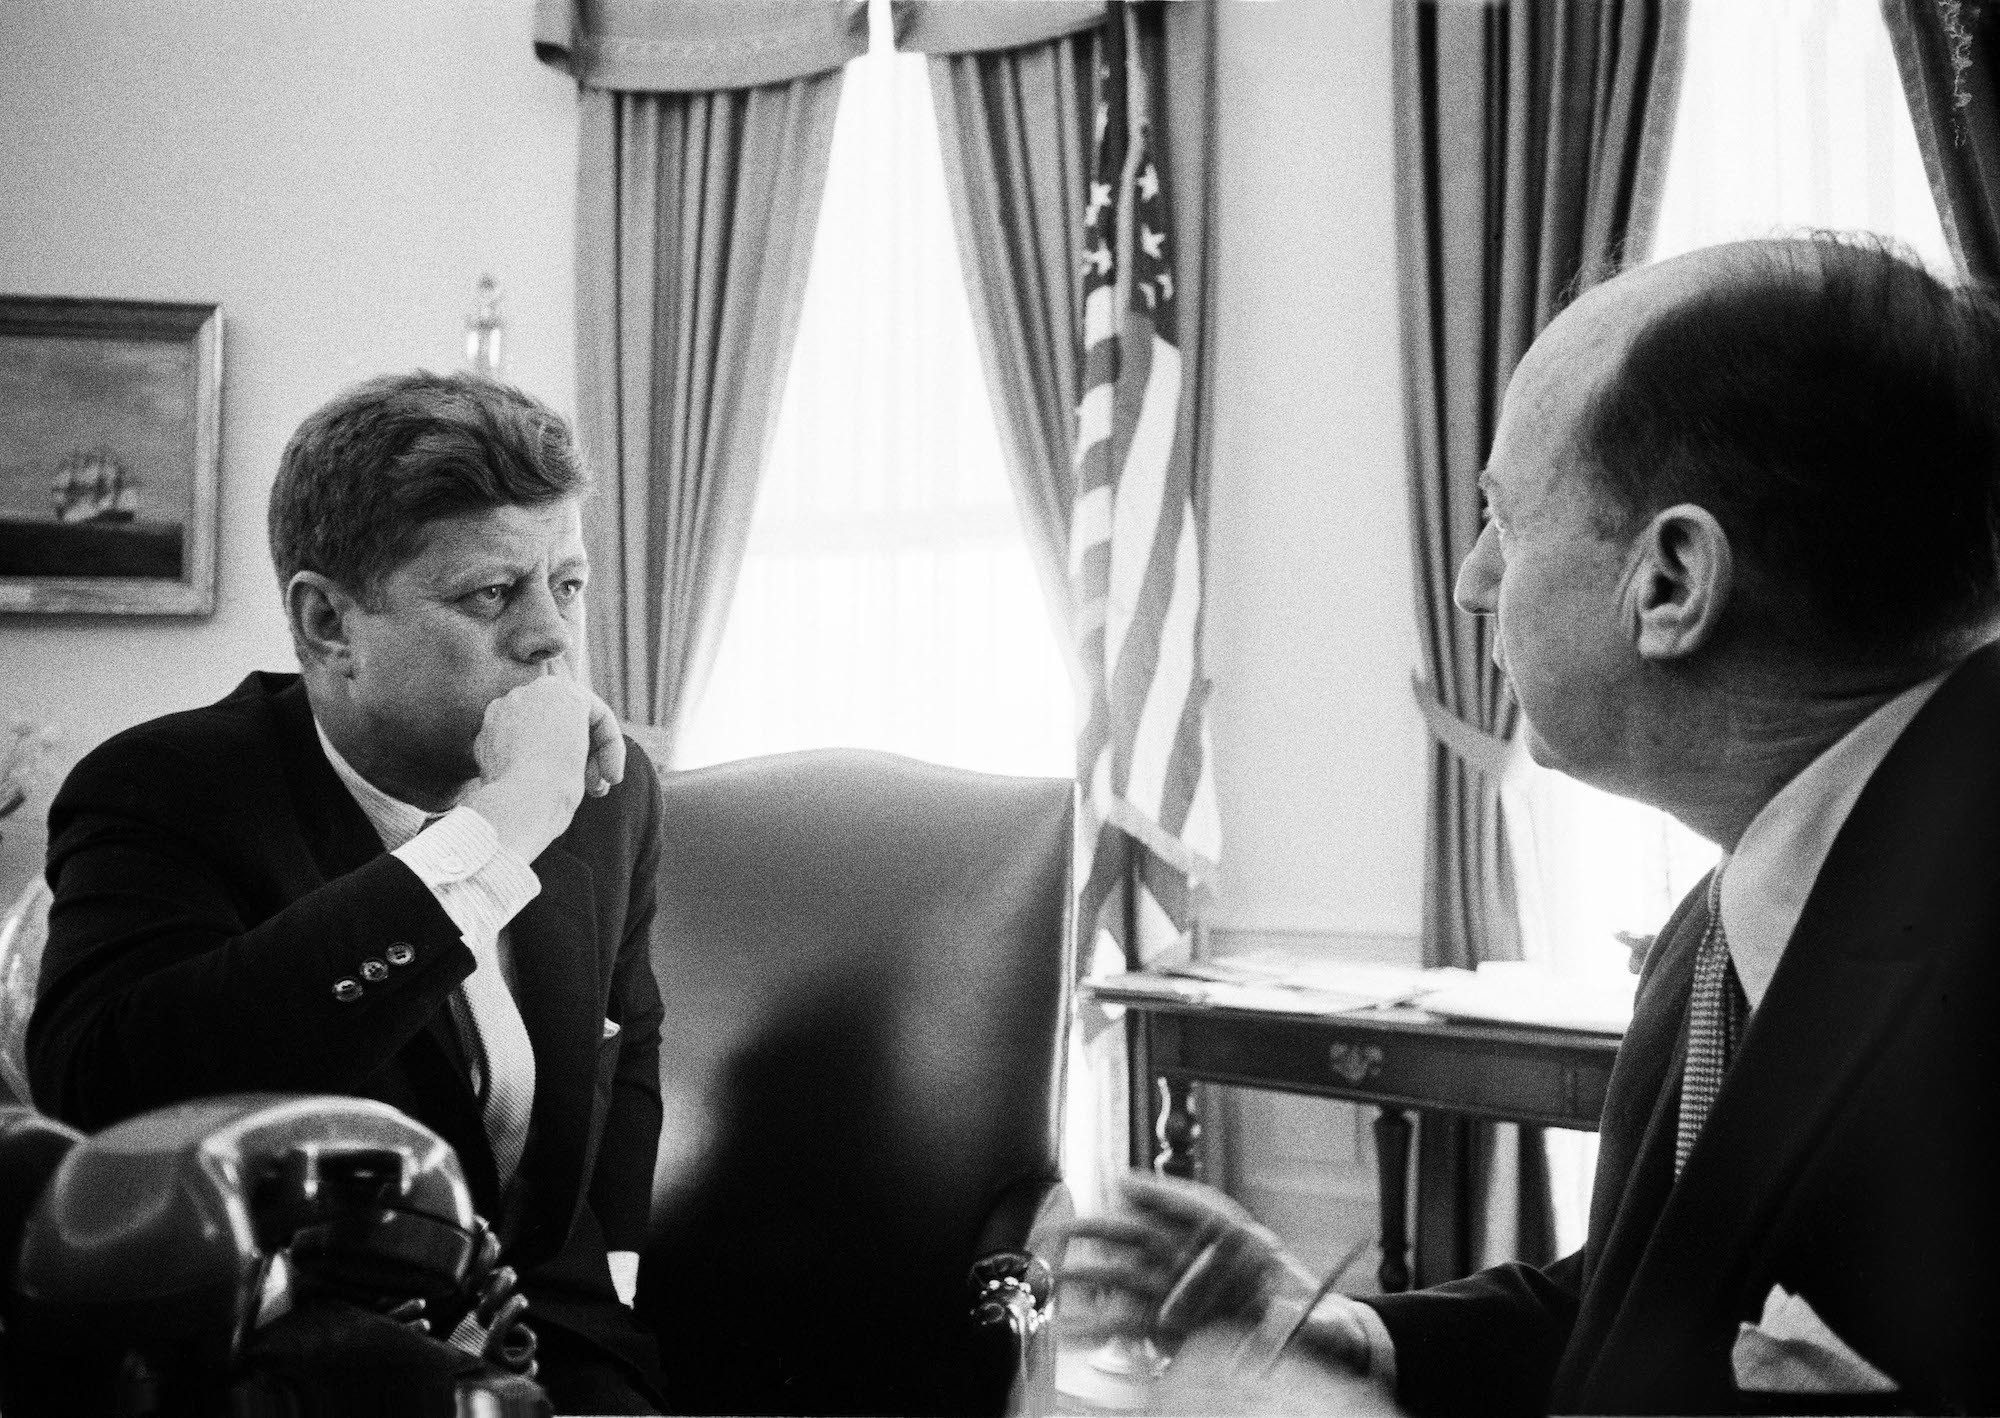 Kirkland took this photo of President John F. Kennedy and United Nations ambassador Adlai Stevenson II while on assignment at the White House in 1962.